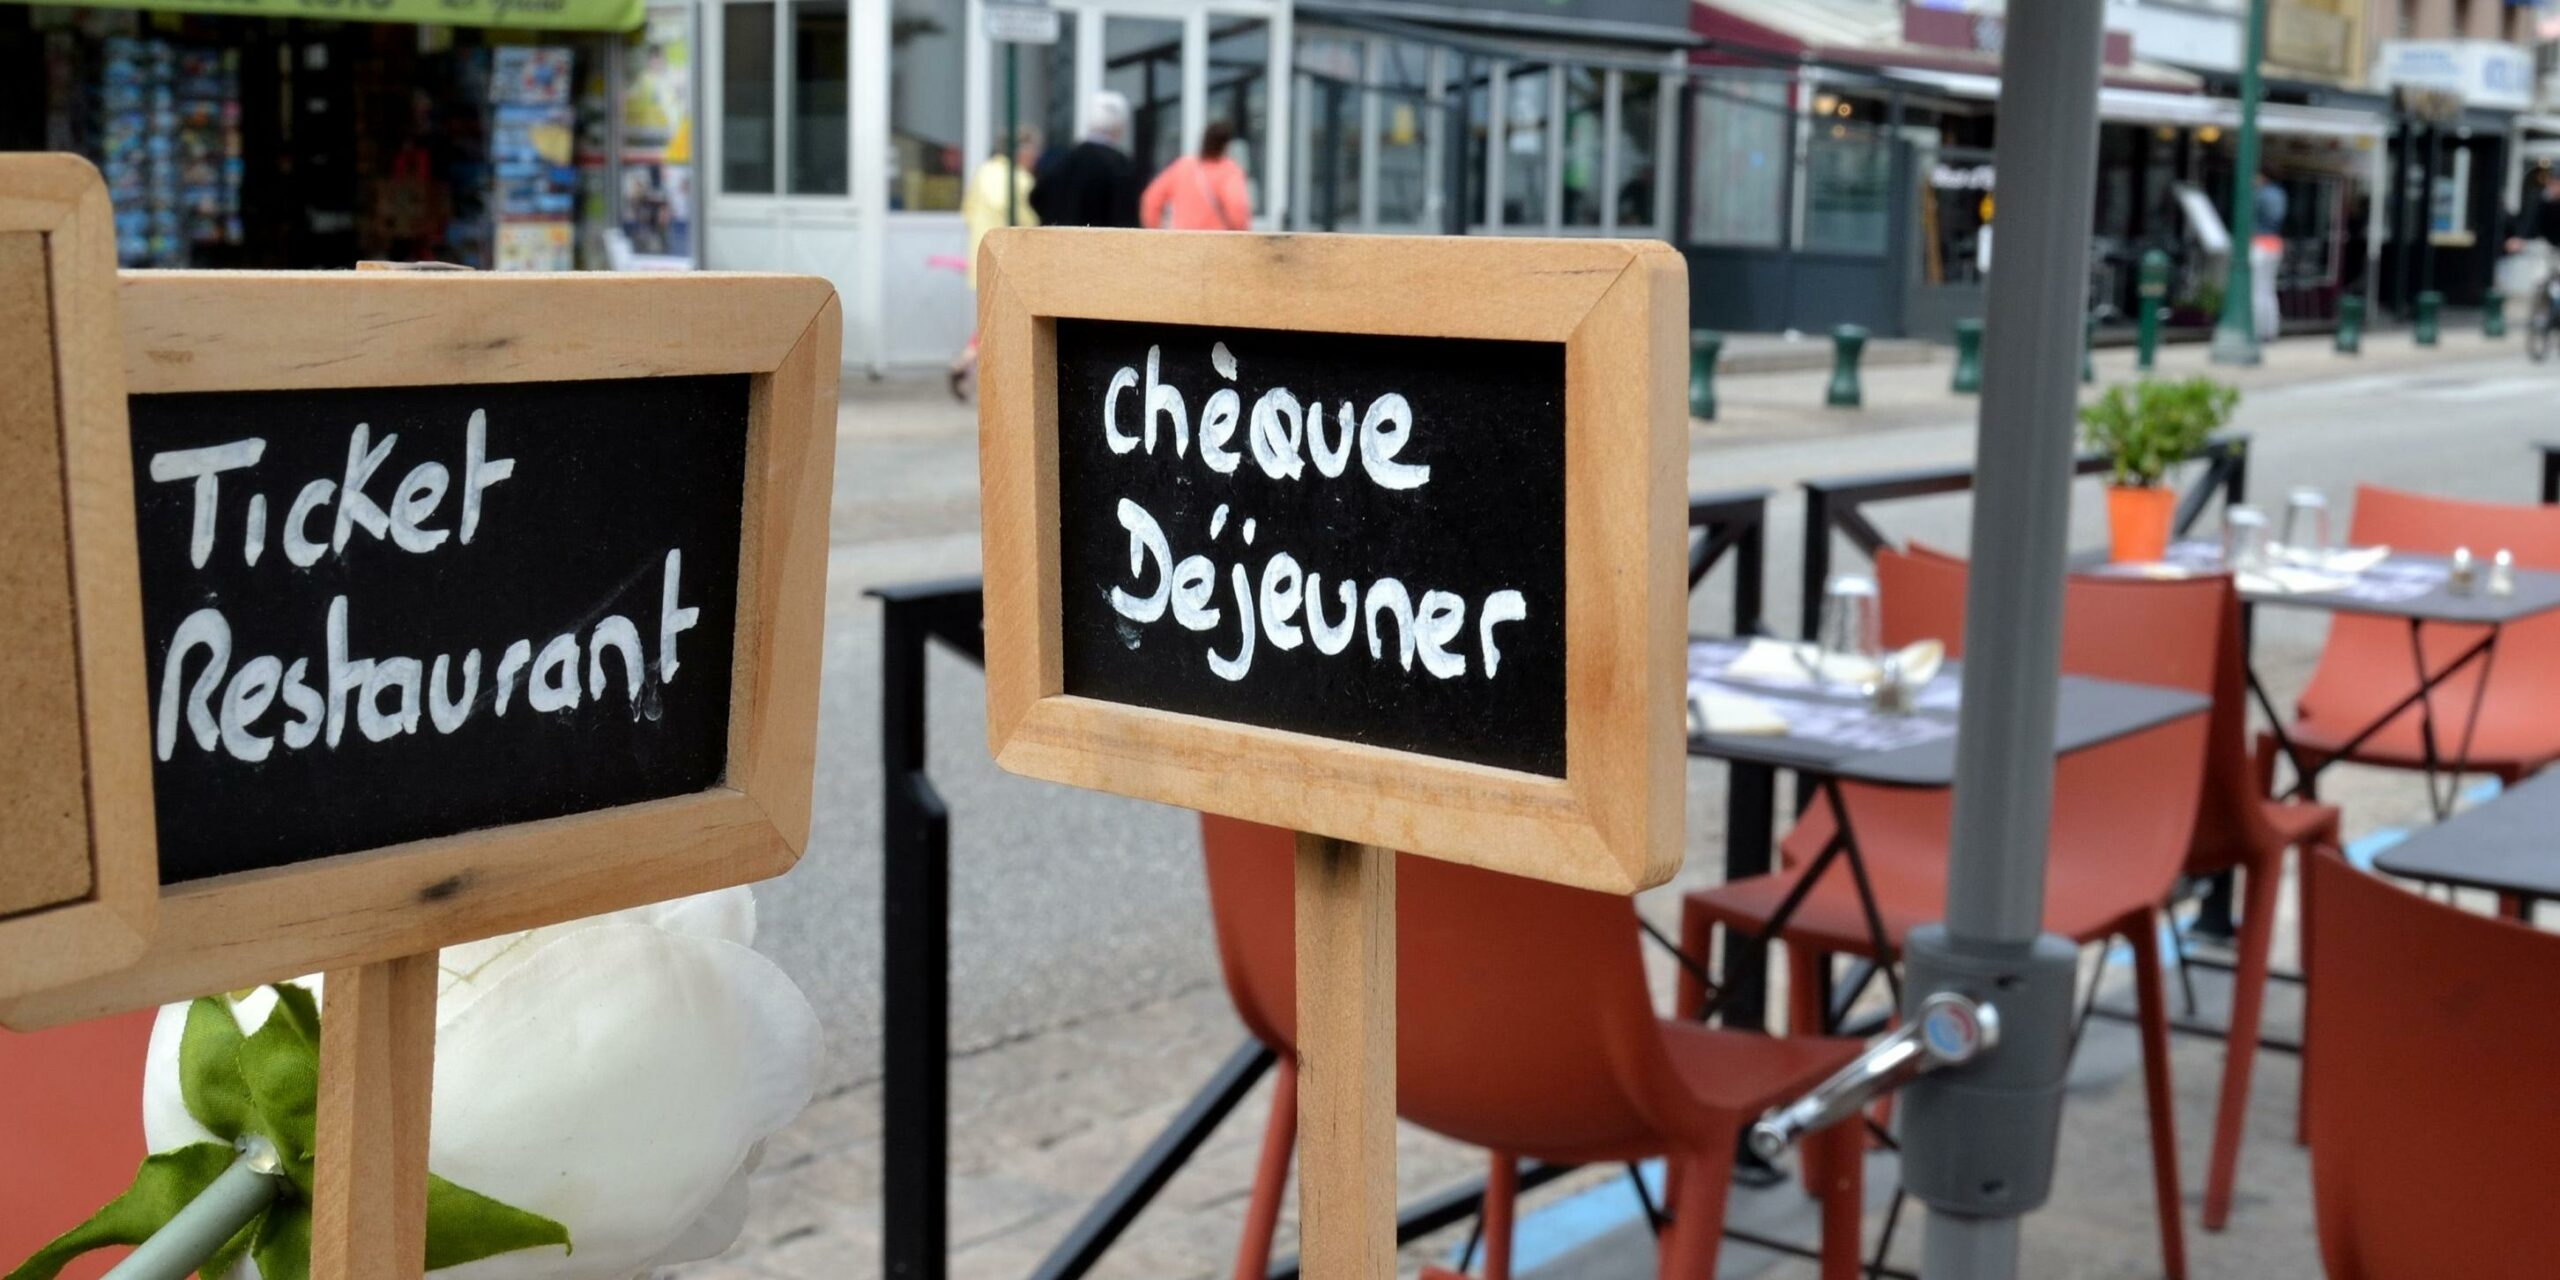 Tickets restaurants : ce qui change en 2021